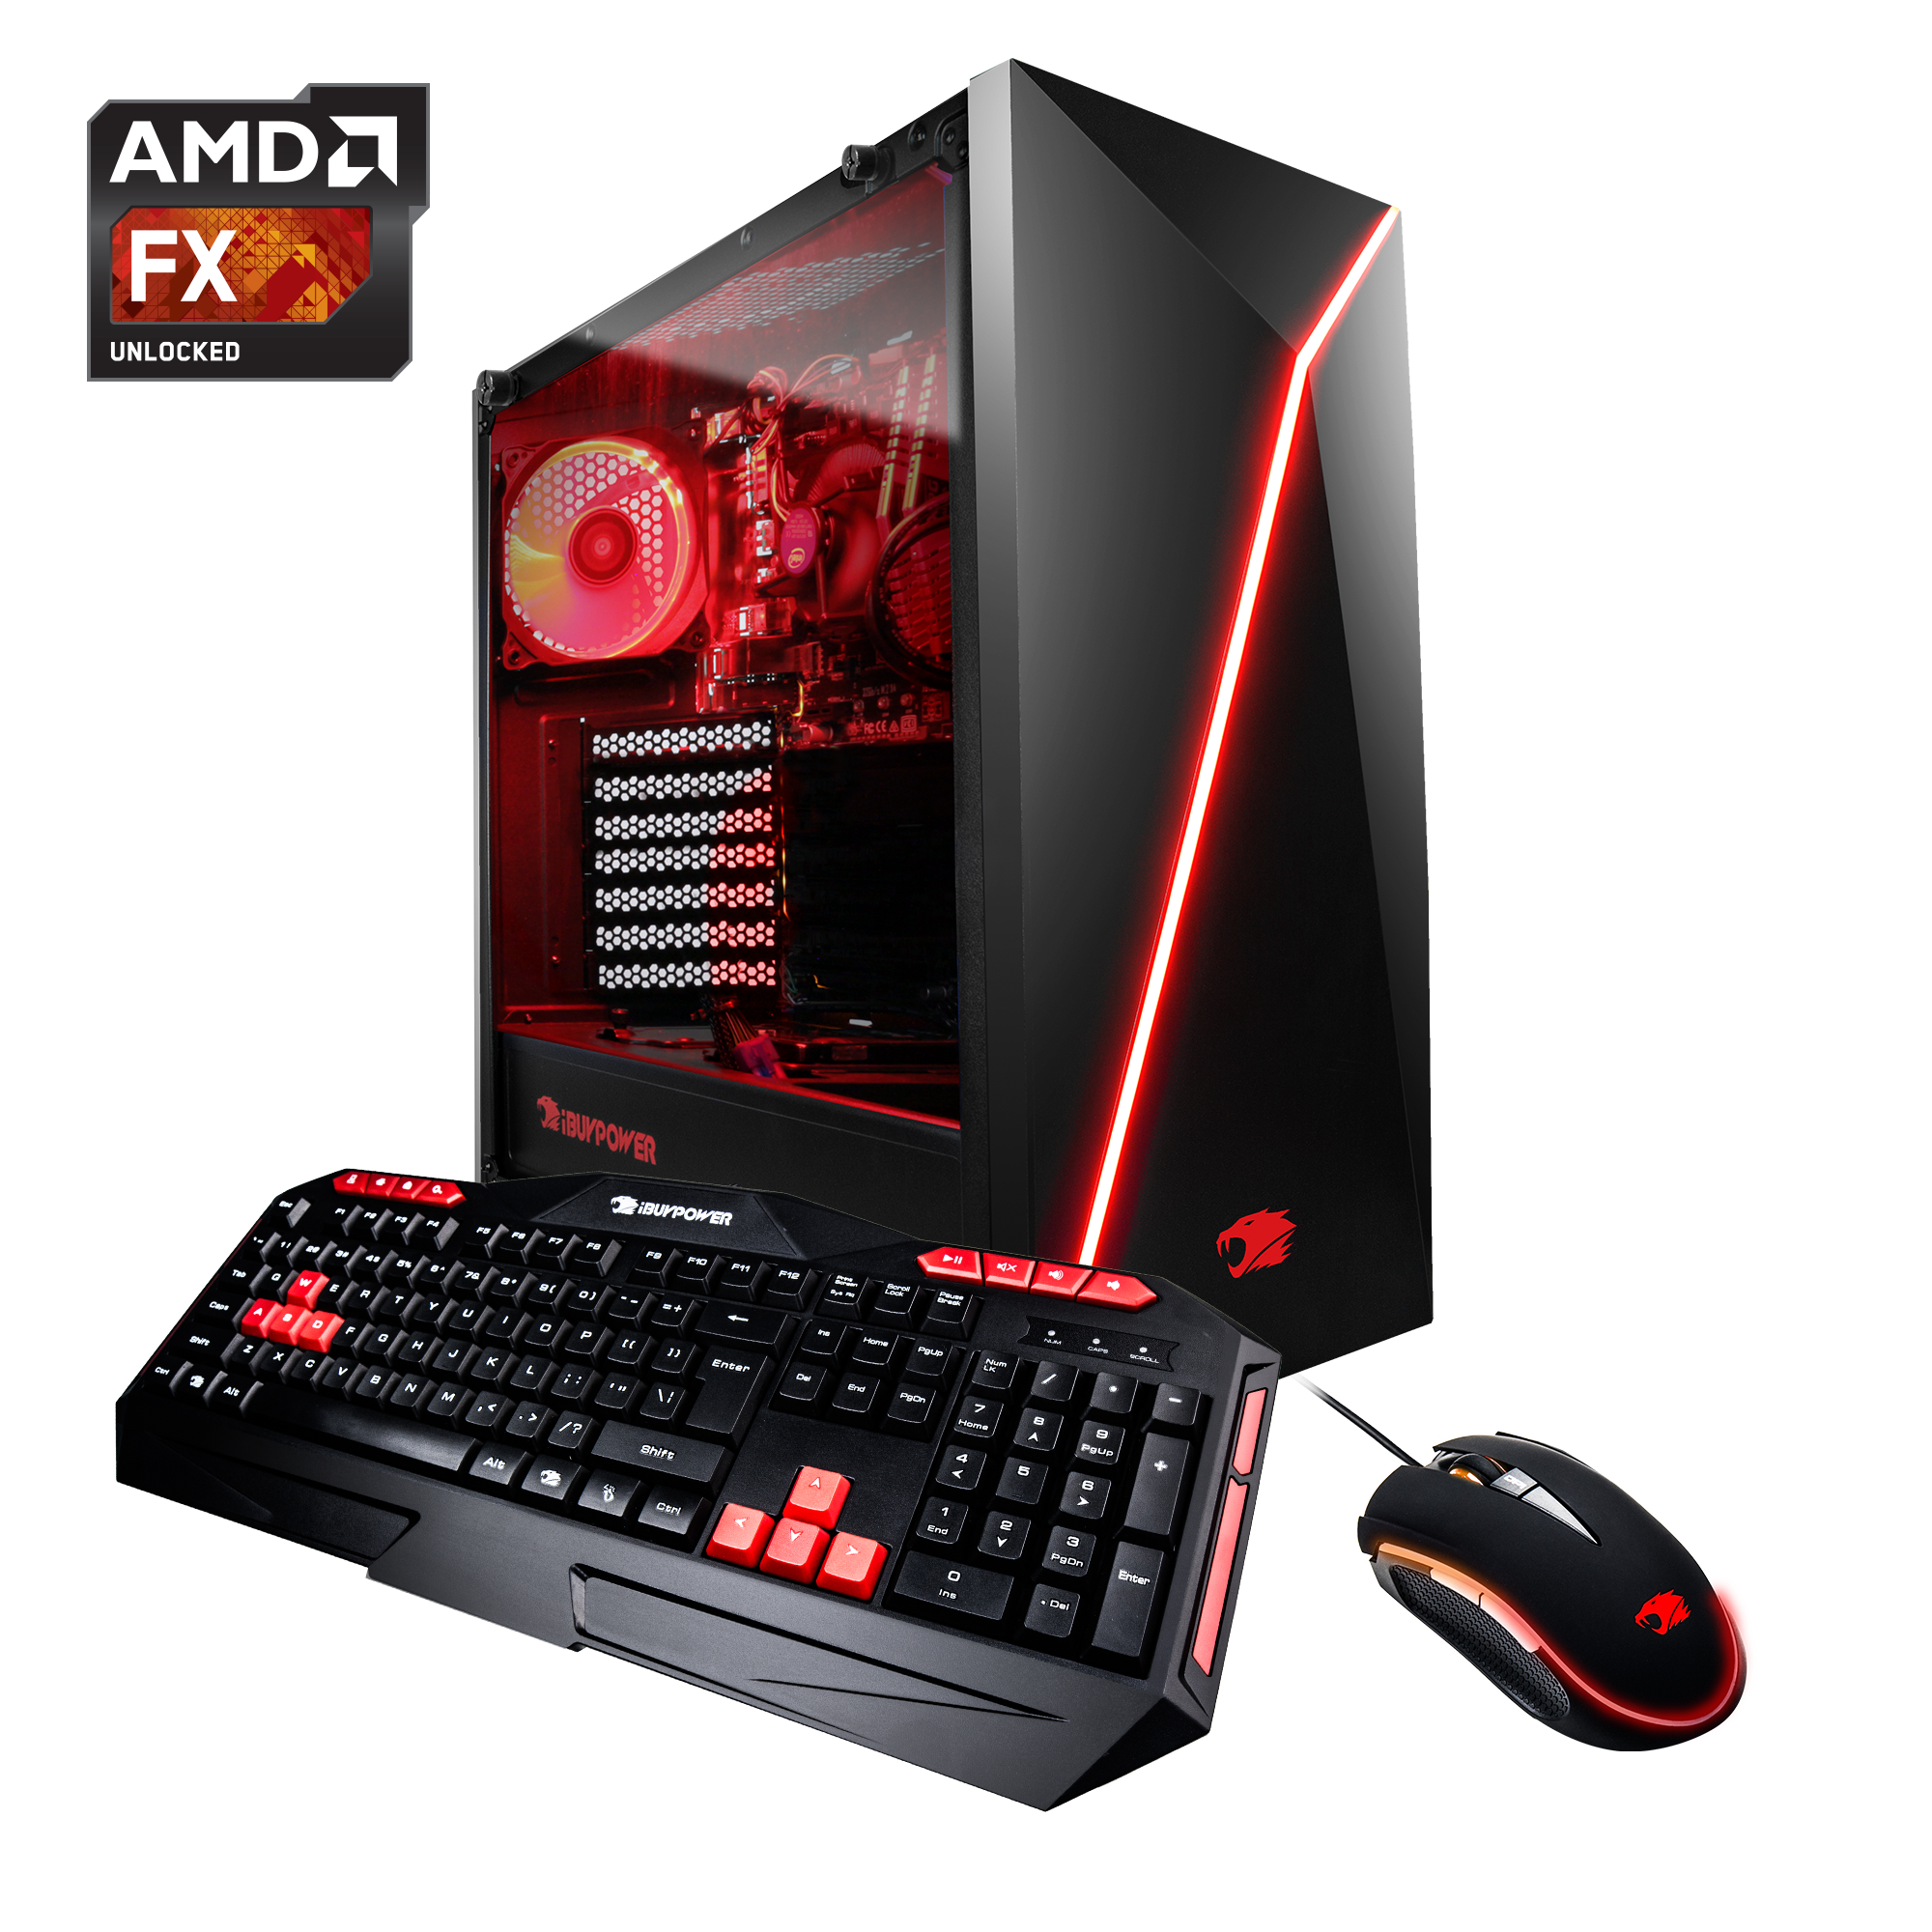 iBUYPOWER WA010A Gaming Desktop PC With AMD FX-6300, GT710 1GB Graphic, 1TB Hard Drive, 8GB DDR4 Memory, and Window 10 Home. (Monitor Not Included) - WA010A